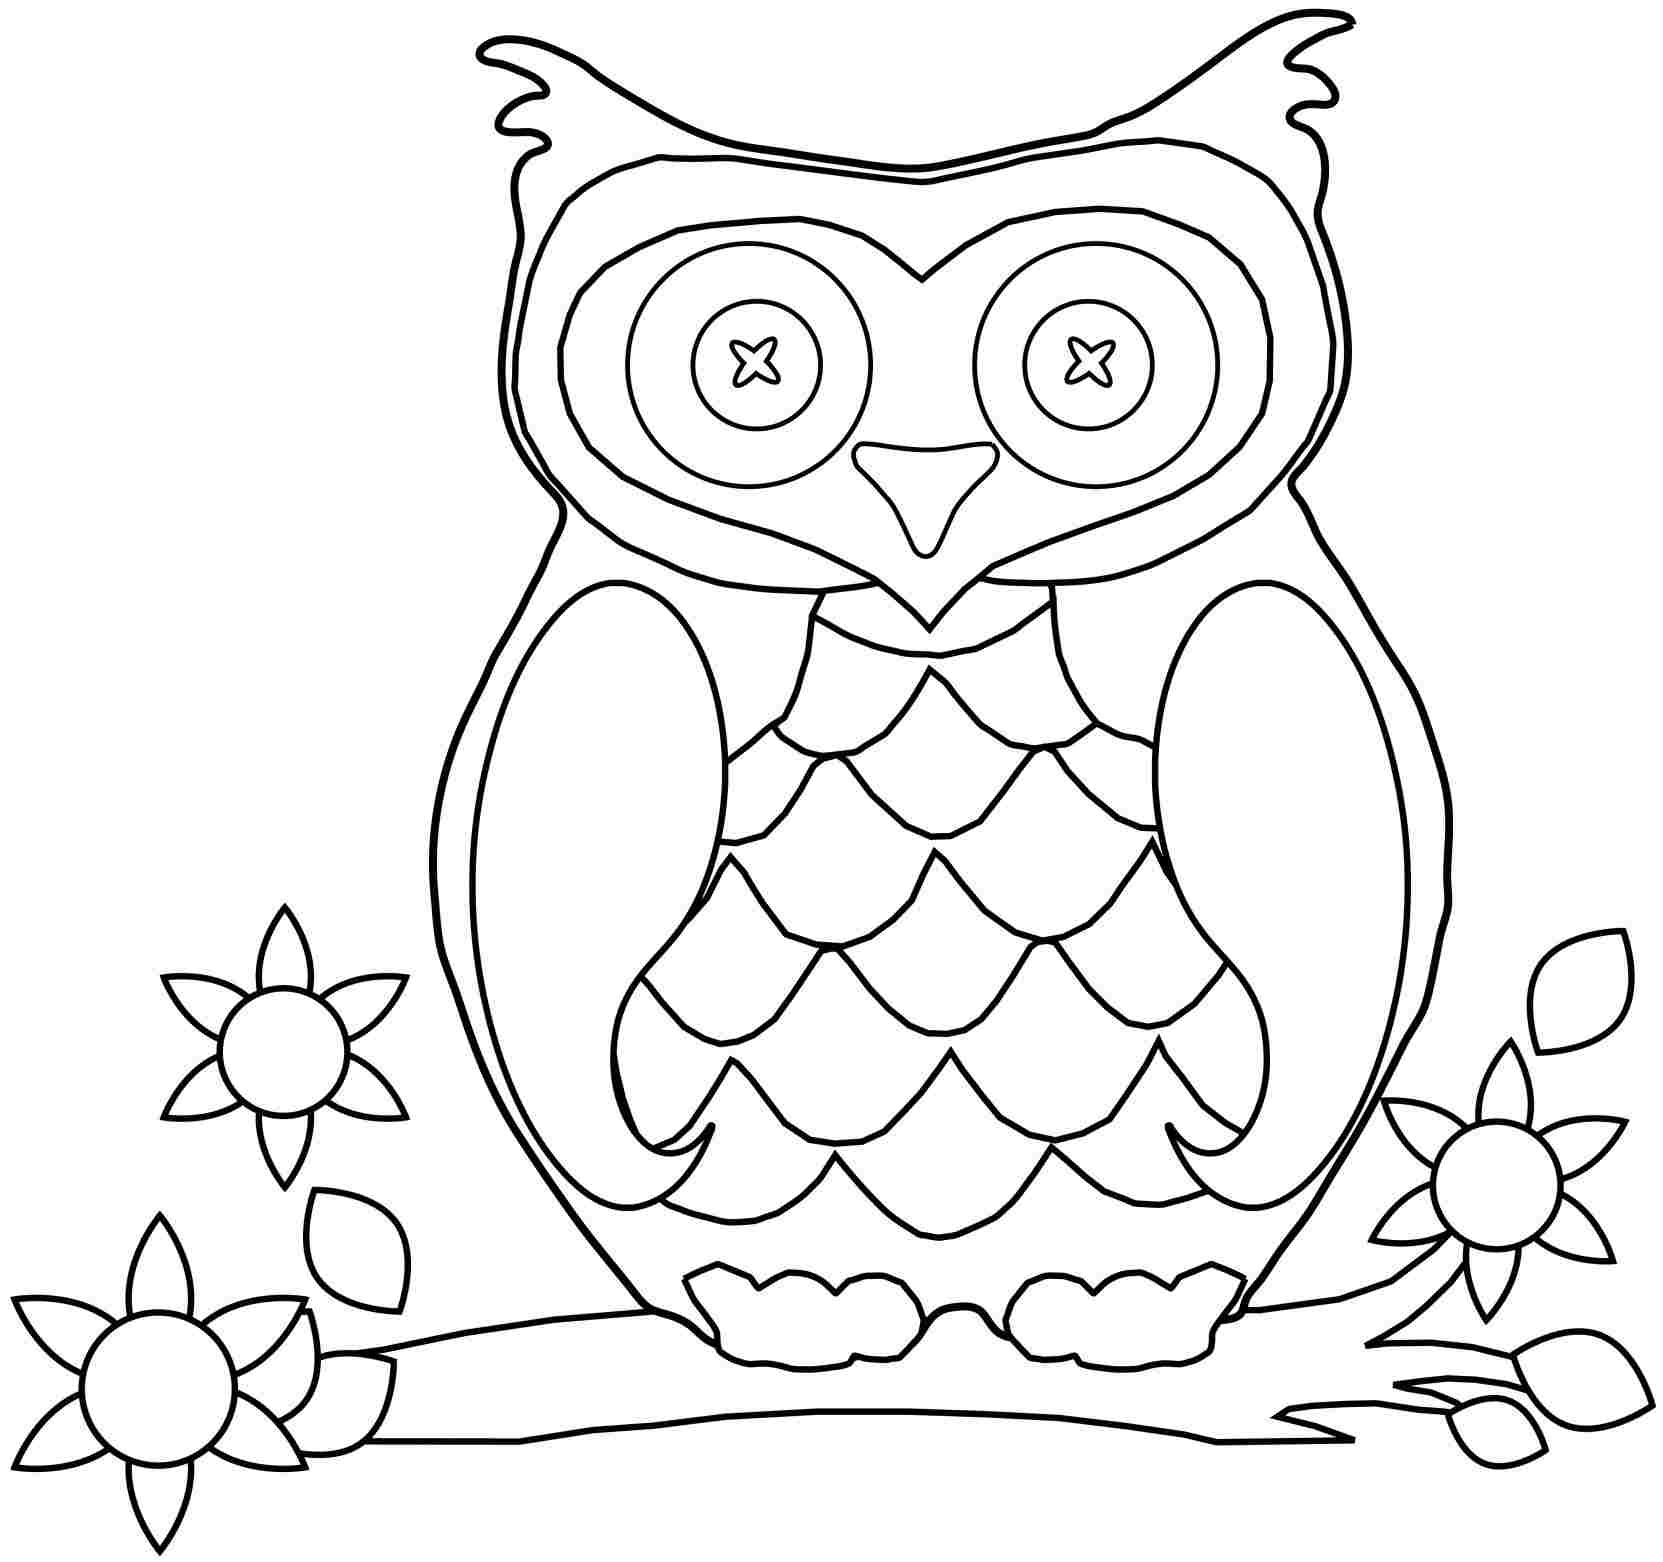 Adult Best Owl Coloring Pages Free Images best cute owl coloring pages az 1000 ideas about on pinterest gallery images